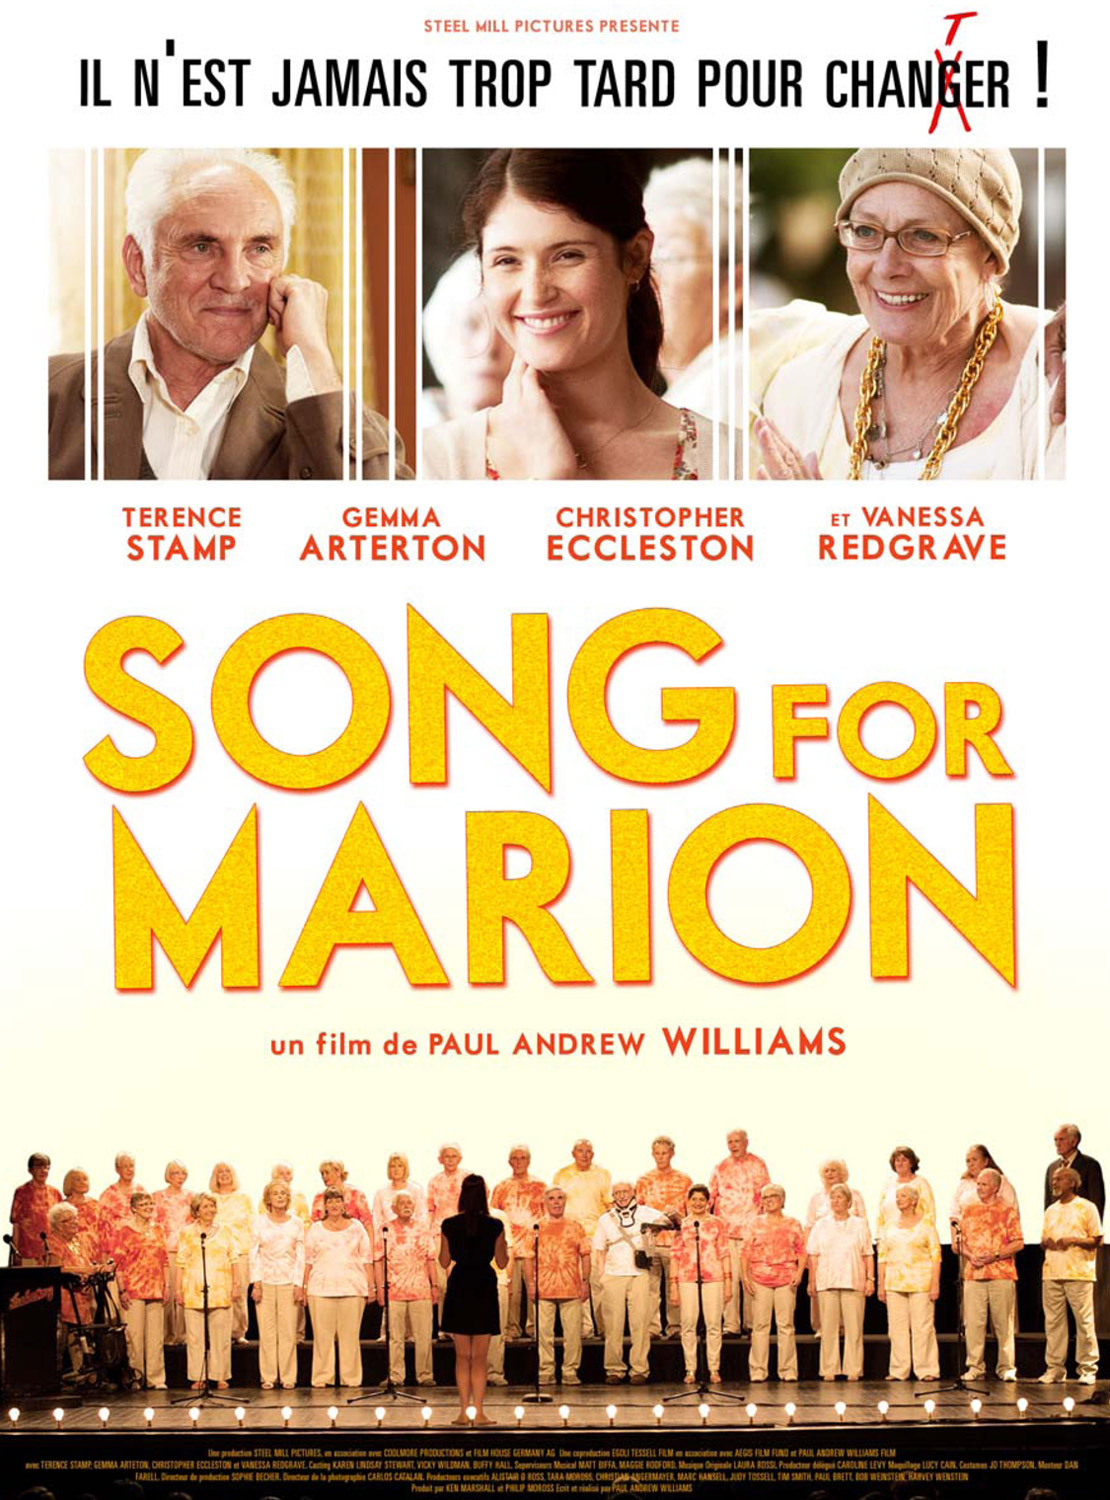 https://i1.wp.com/www.under-my-screen.com/wp-content/uploads/2013/11/affiche-Song-for-Marion-2012-1.jpg